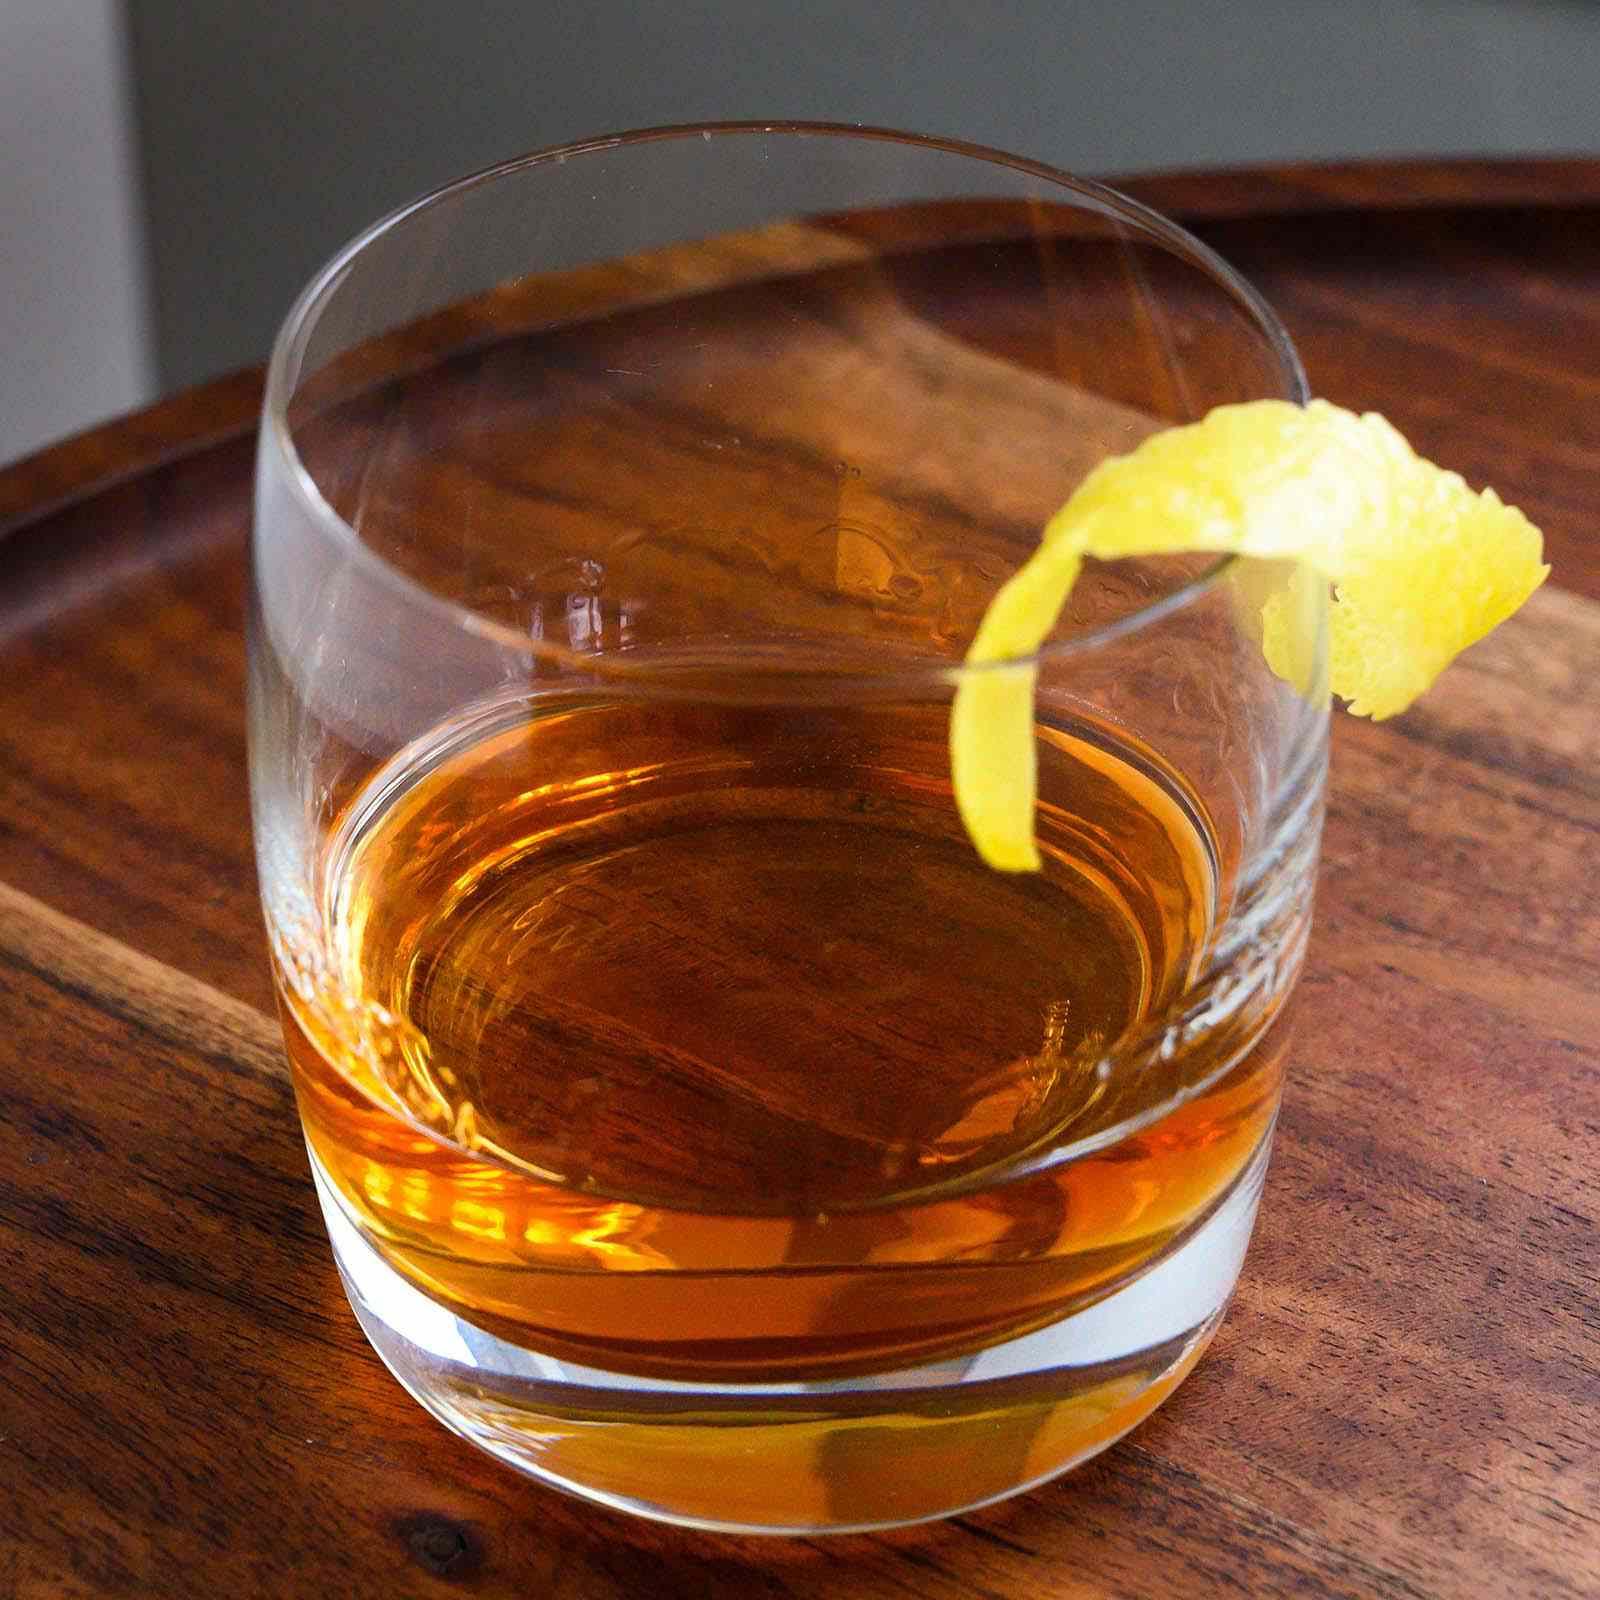 Vertical picture of sazarec drink on a round wooden table with a lemon peel on the edge of the glass.